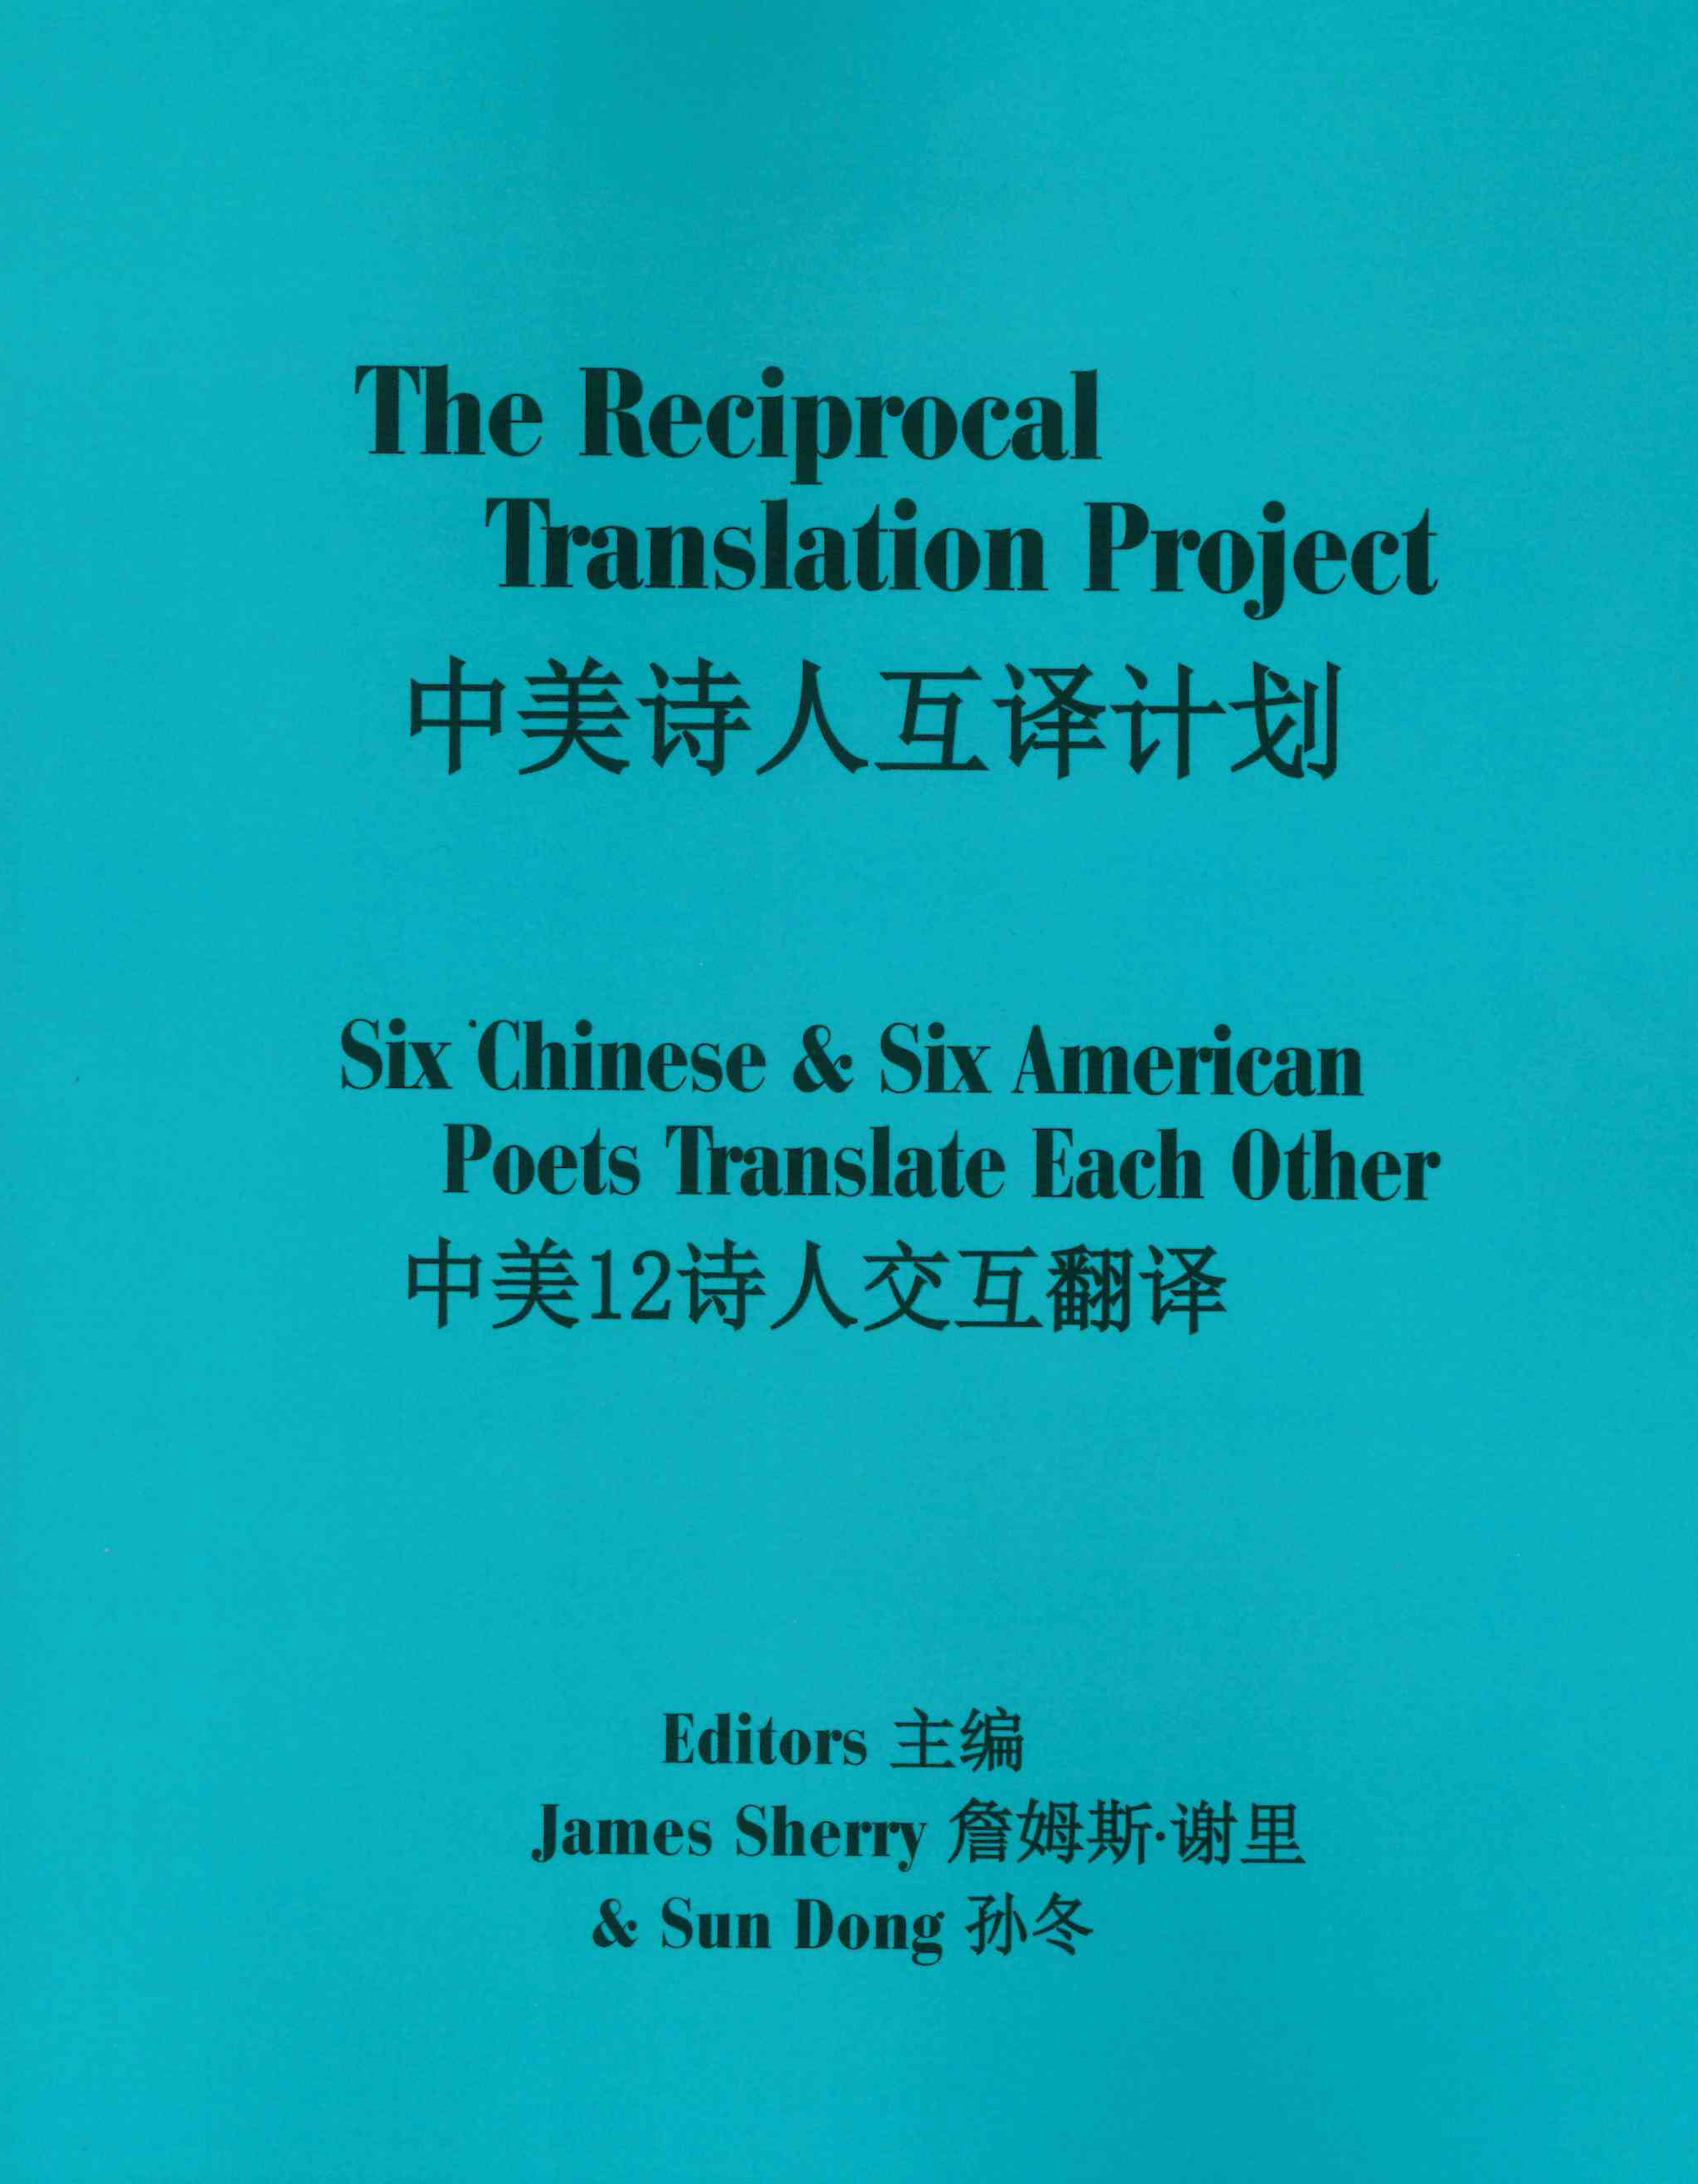 The Reciprocal Translation Project